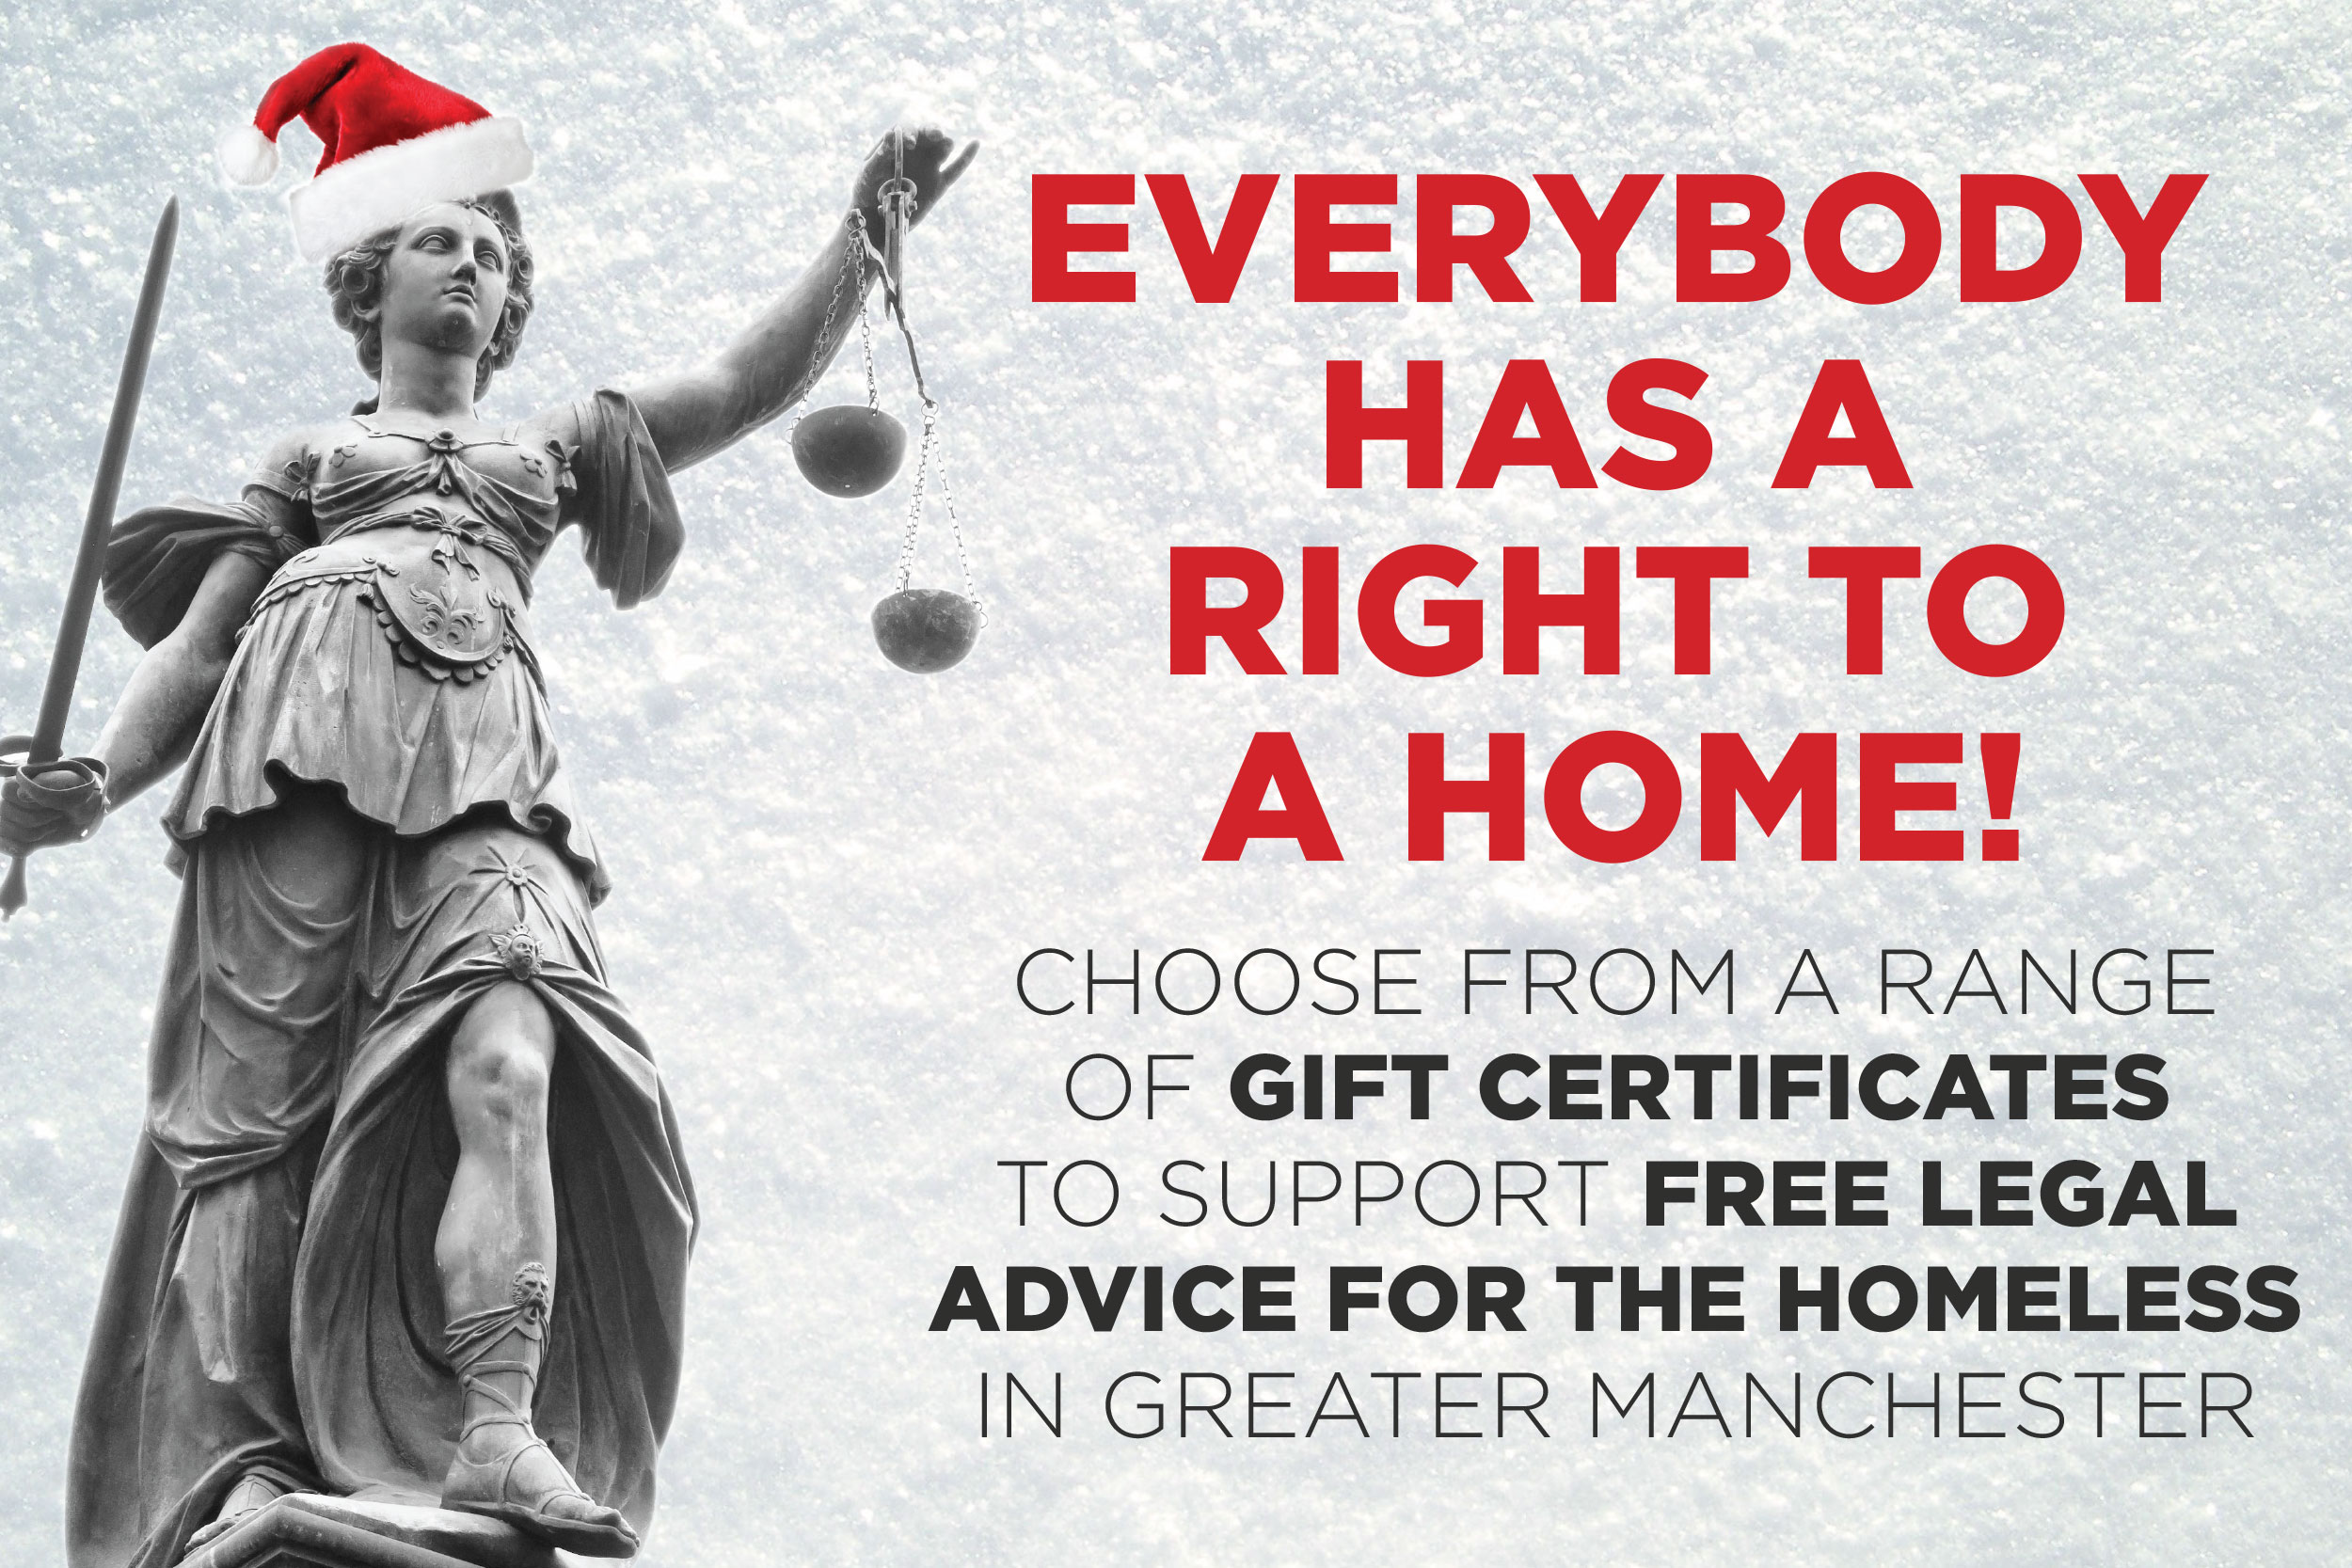 Everybody has a right to a home